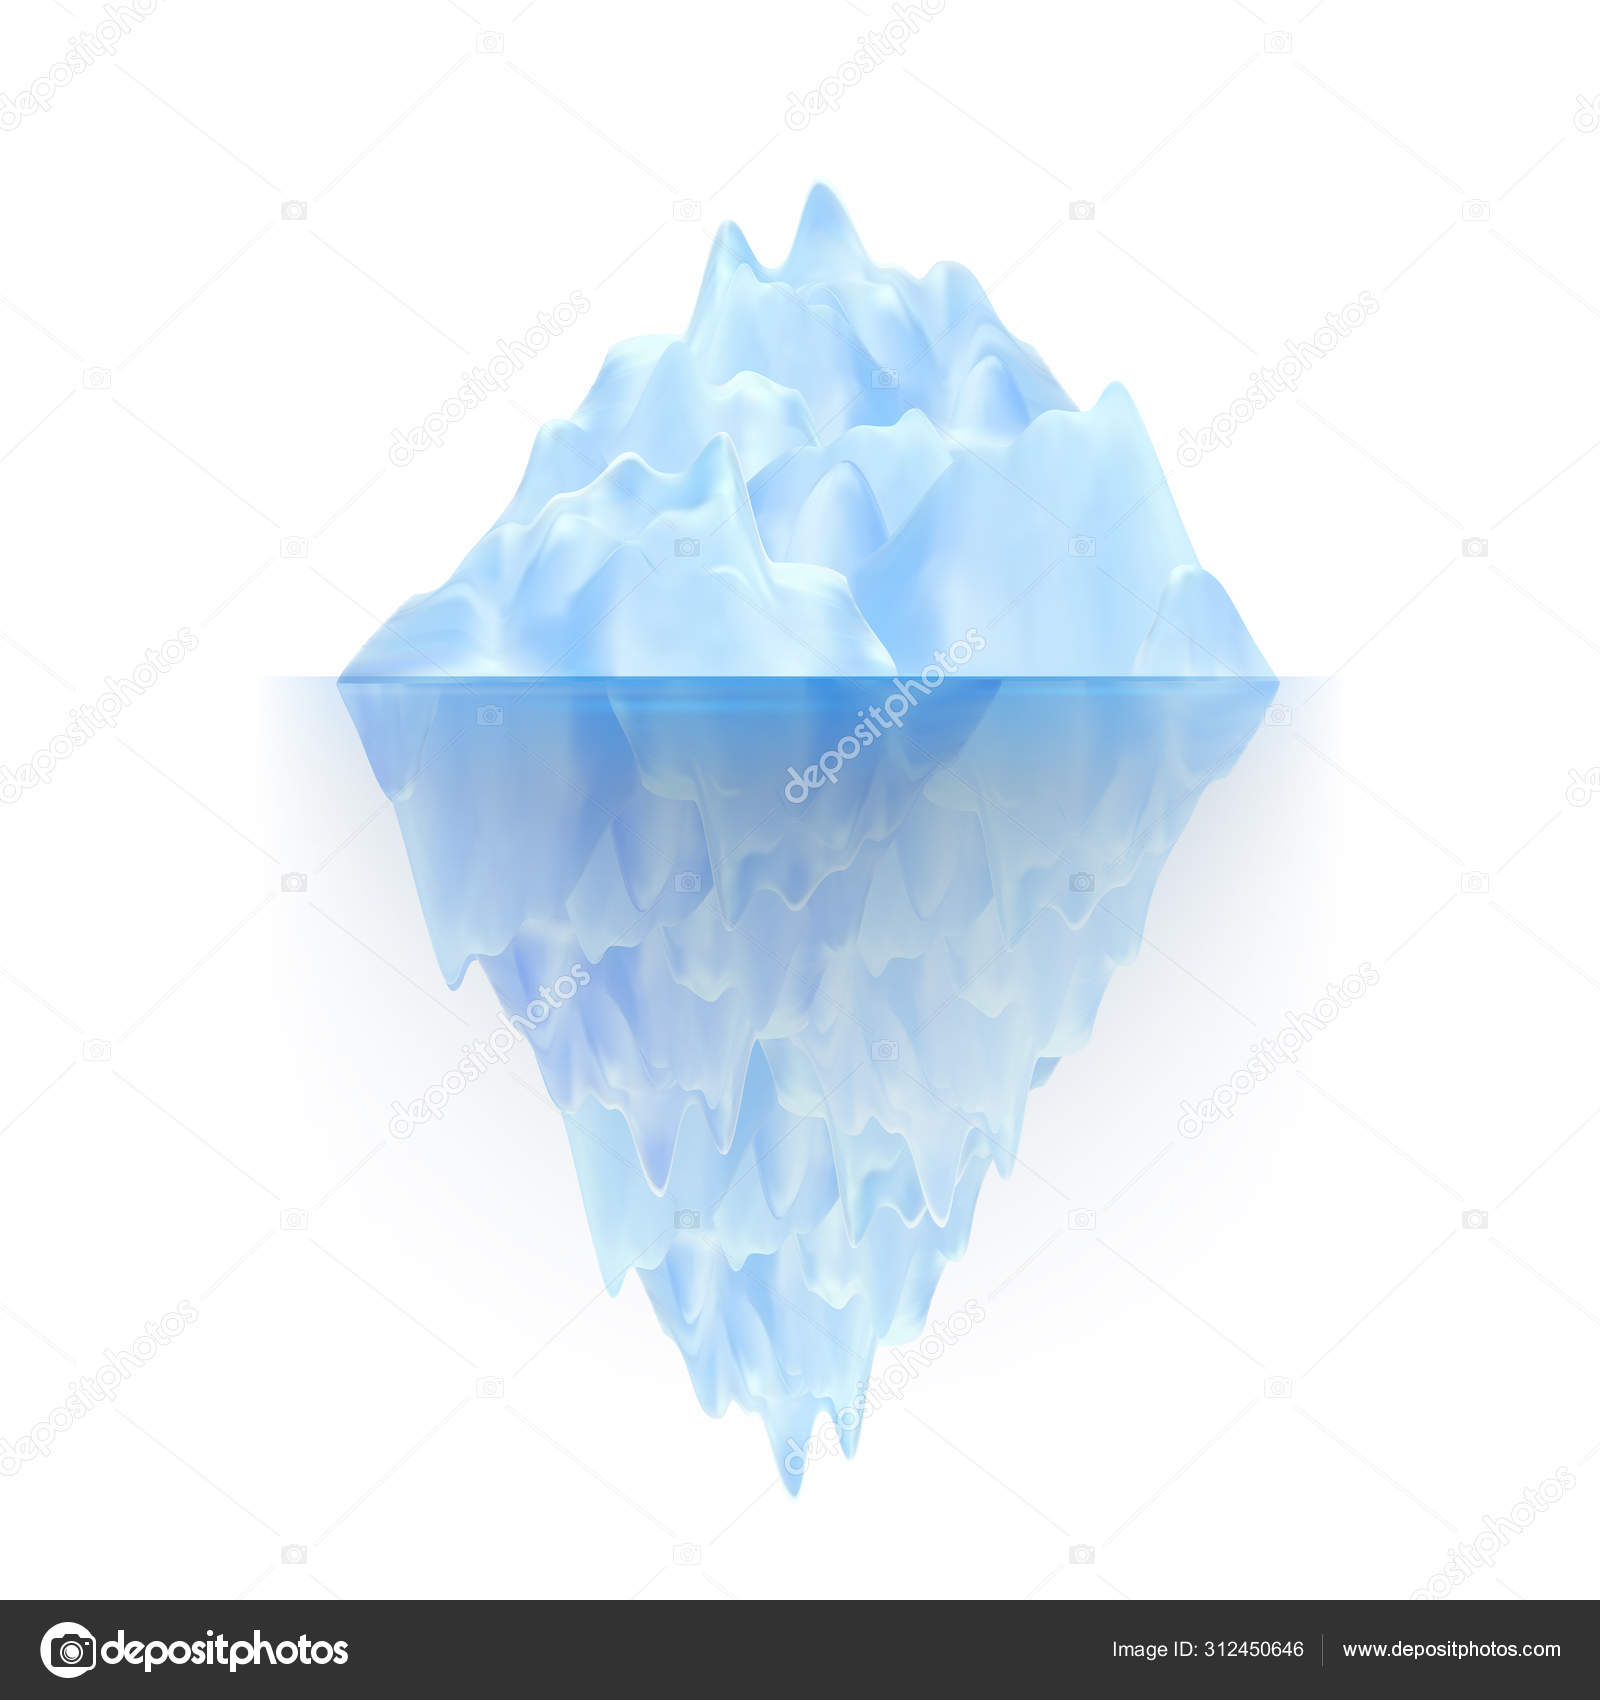 glacier ice rock floating on water waves vector stock vector c pikepicture 312450646 glacier ice rock floating on water waves vector stock vector c pikepicture 312450646